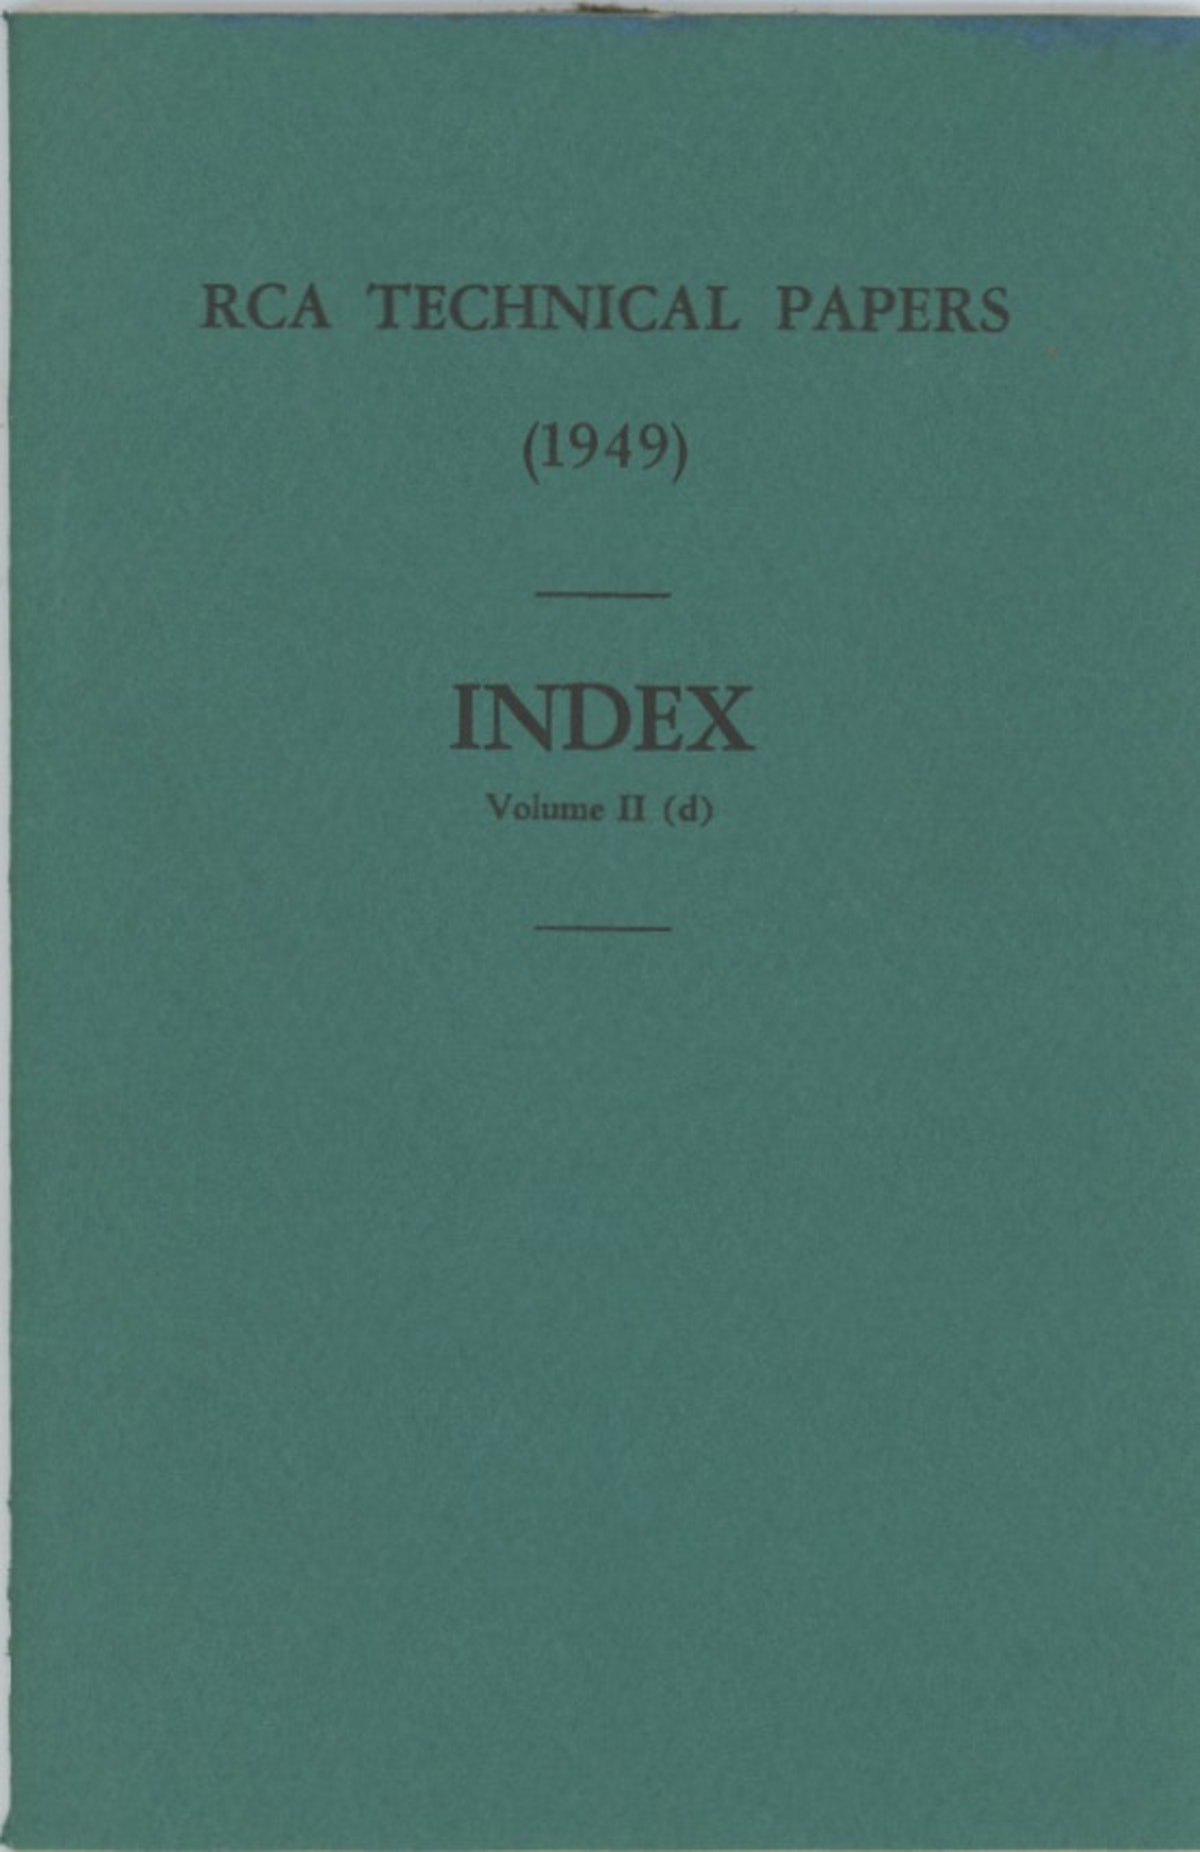 RCA Technical Papers Index Volume II (d)